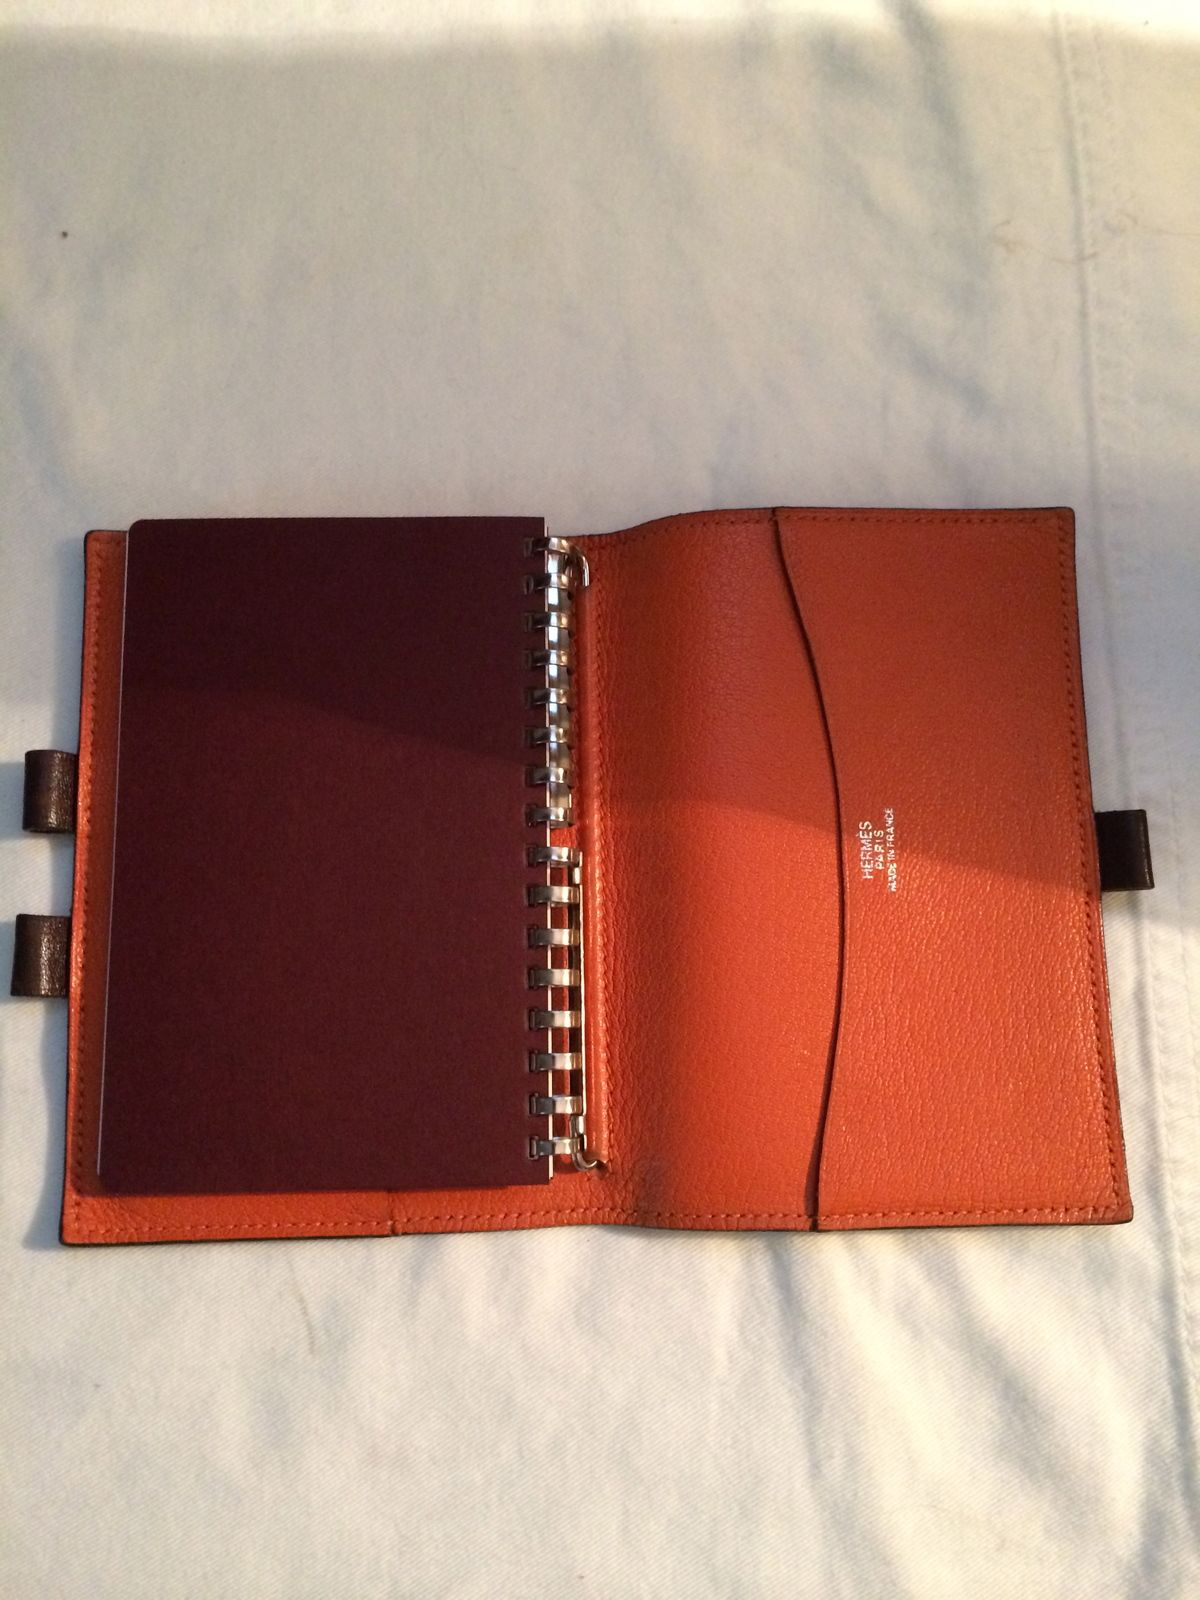 AUTHENTIC HERMES Brown LEATHER MINI AGENDA COVER DAY PLANNER MADE IN FRANCE   eVintage 42bb3ed05798f